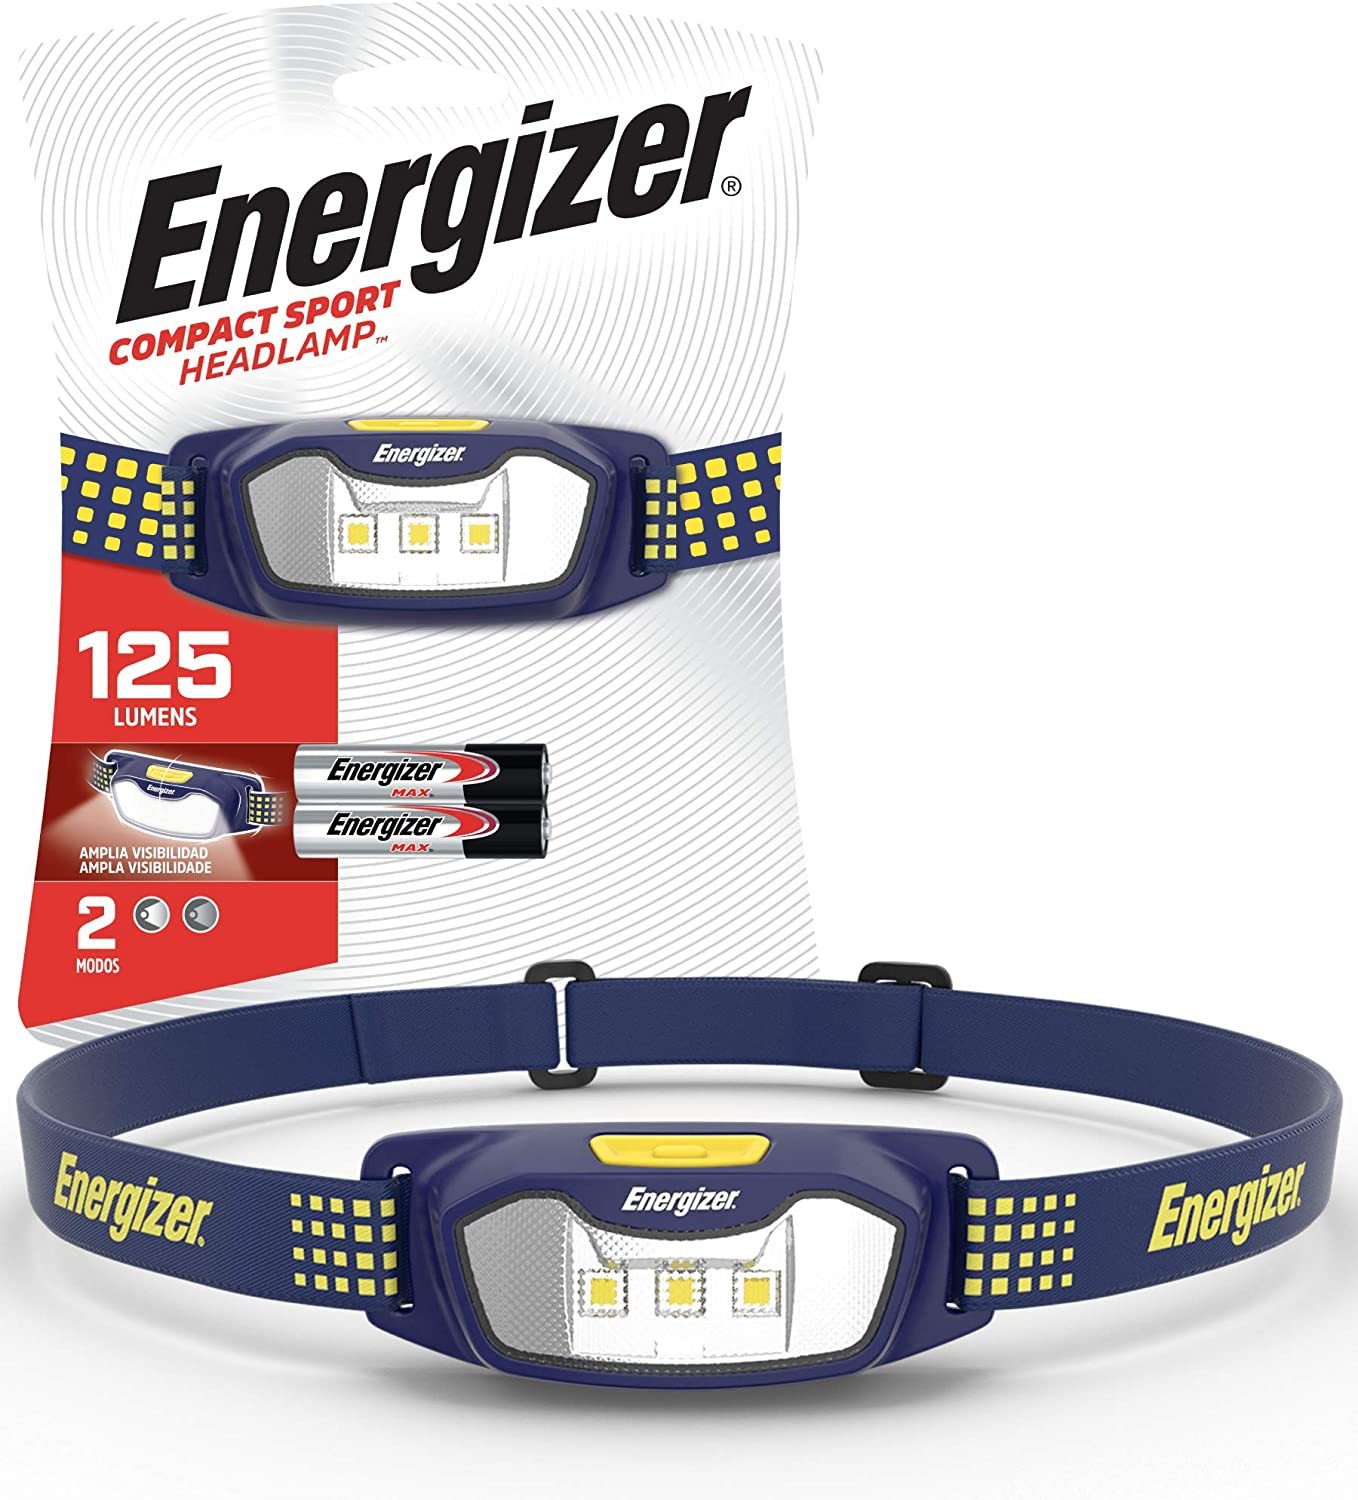 Energizer LED Headlamp Flashlight Super Selling H Compact Bright Sport Special price for a limited time